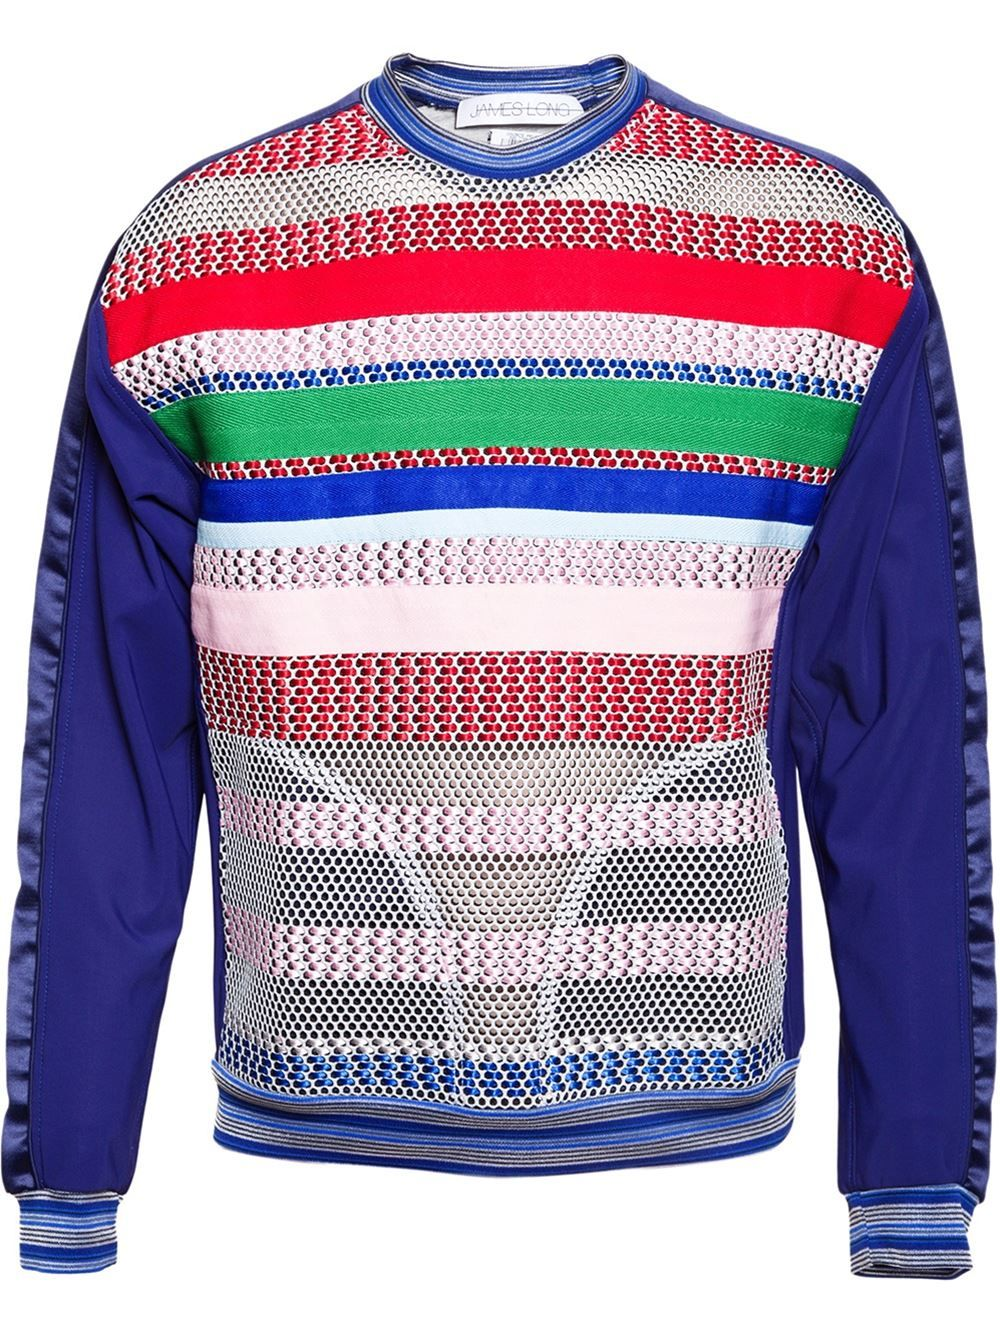 JAMES LONG mesh technofabric sweatshirt available now at Farfetch